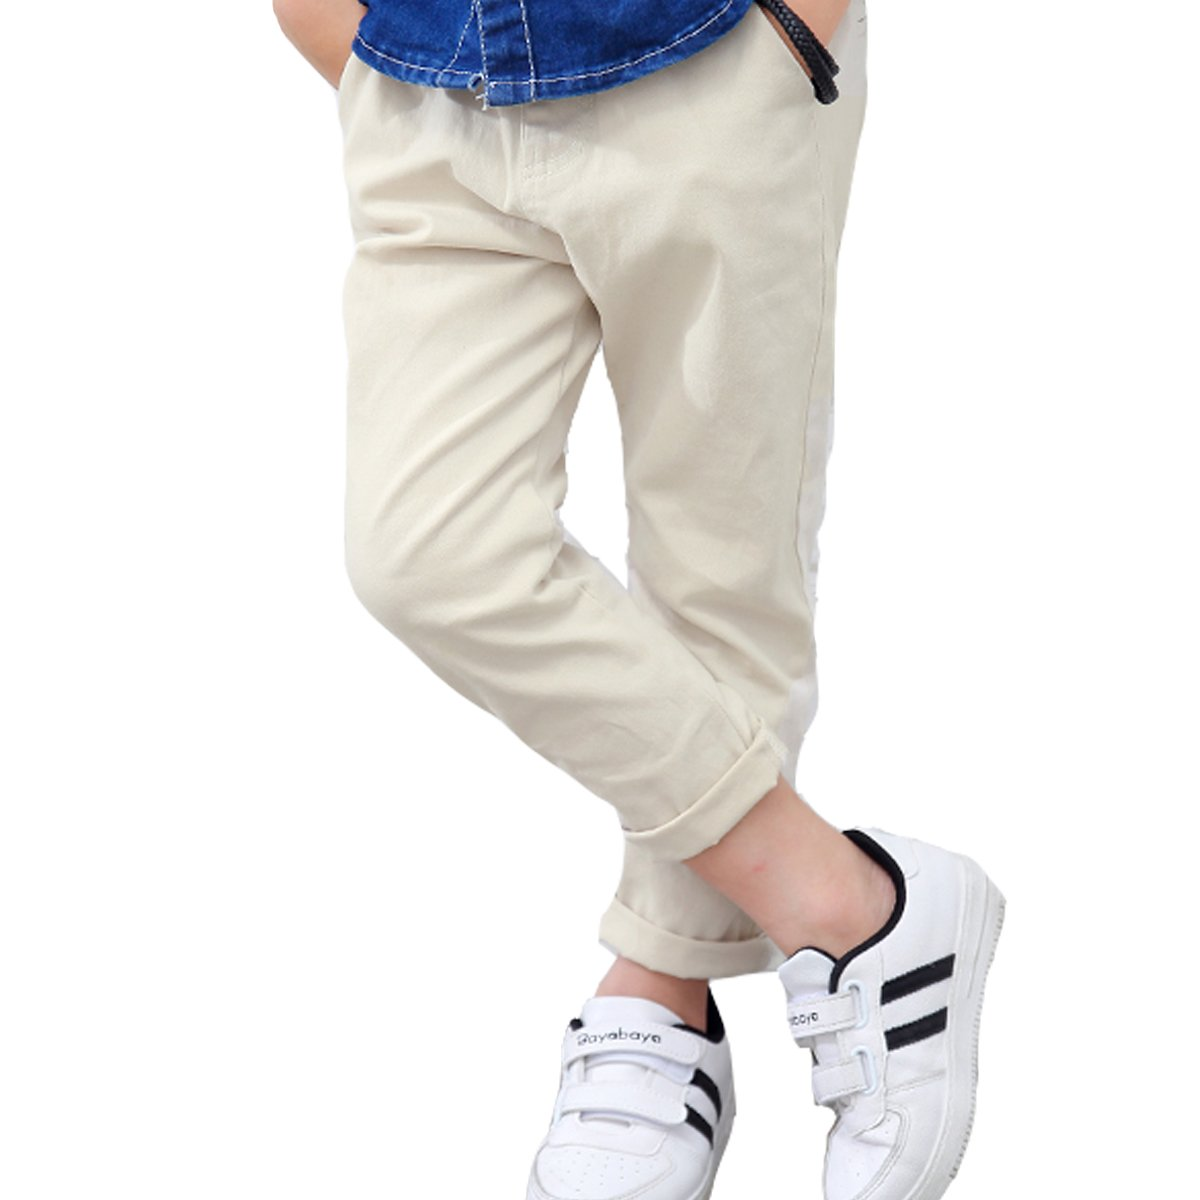 NABER Kids Boys' Elastic Waist Casual Pants Slim Fit Trousers Size 3-13 Years (Creamy-White, 4-5 Years)